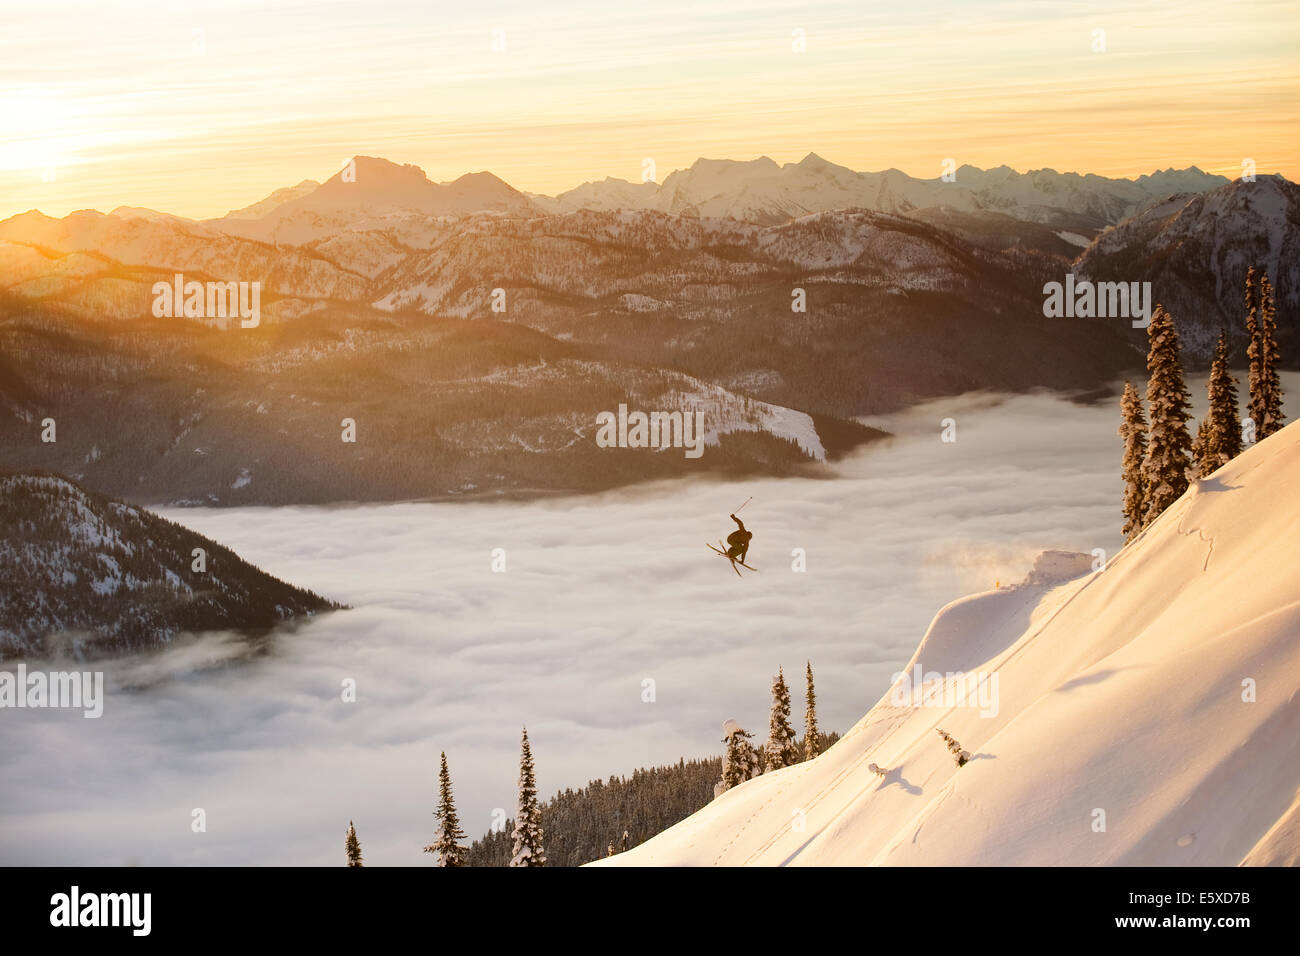 Mark Abma hitting a jump while skiing in the Mustang Powder Cats mountain area, B.C., Canada at sunset - Stock Image